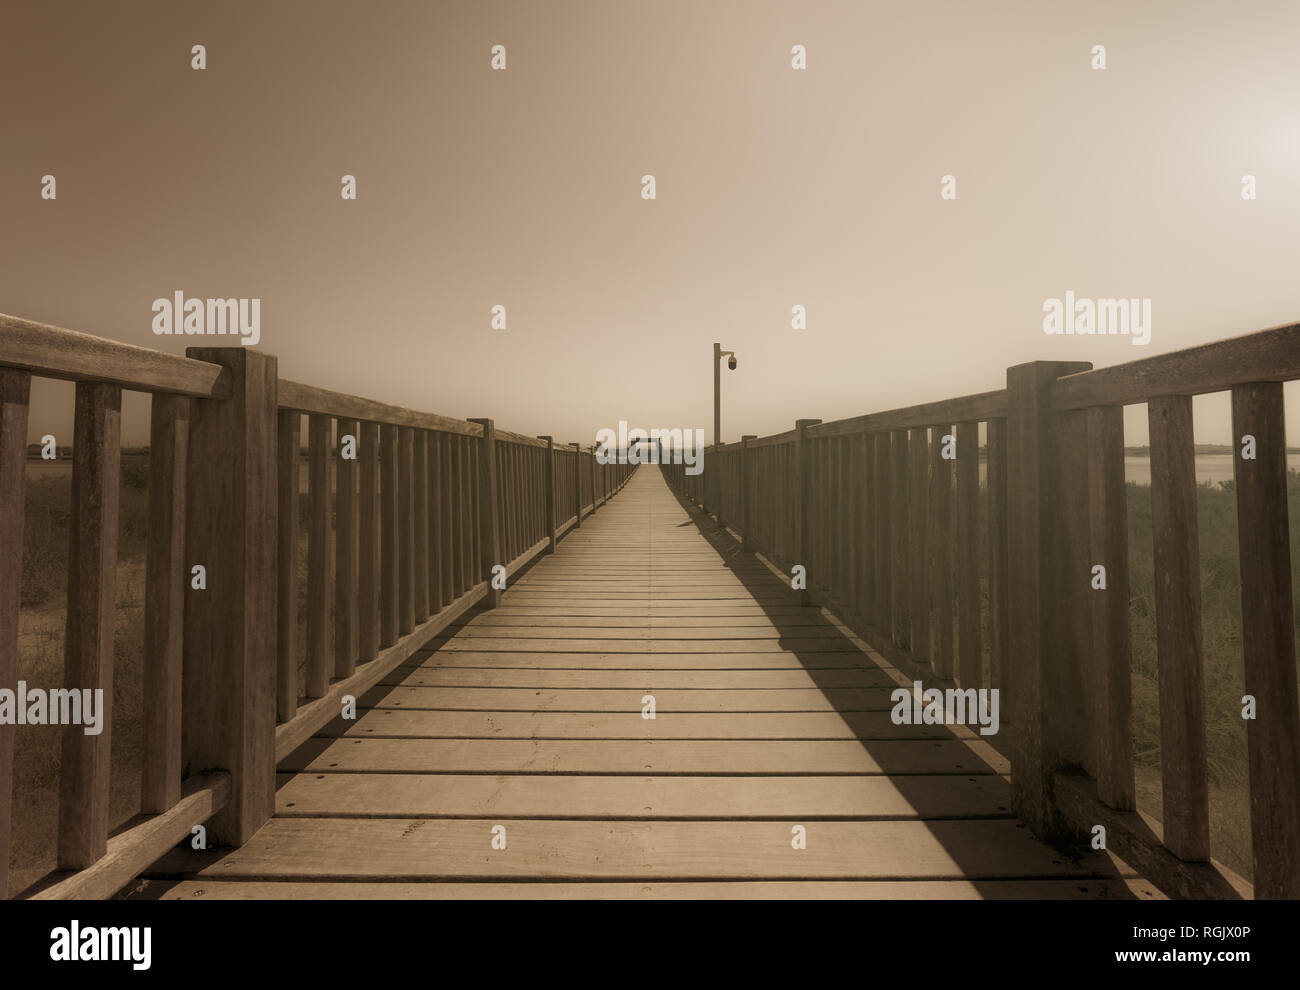 Vanishing point of a wooden path. - Stock Image